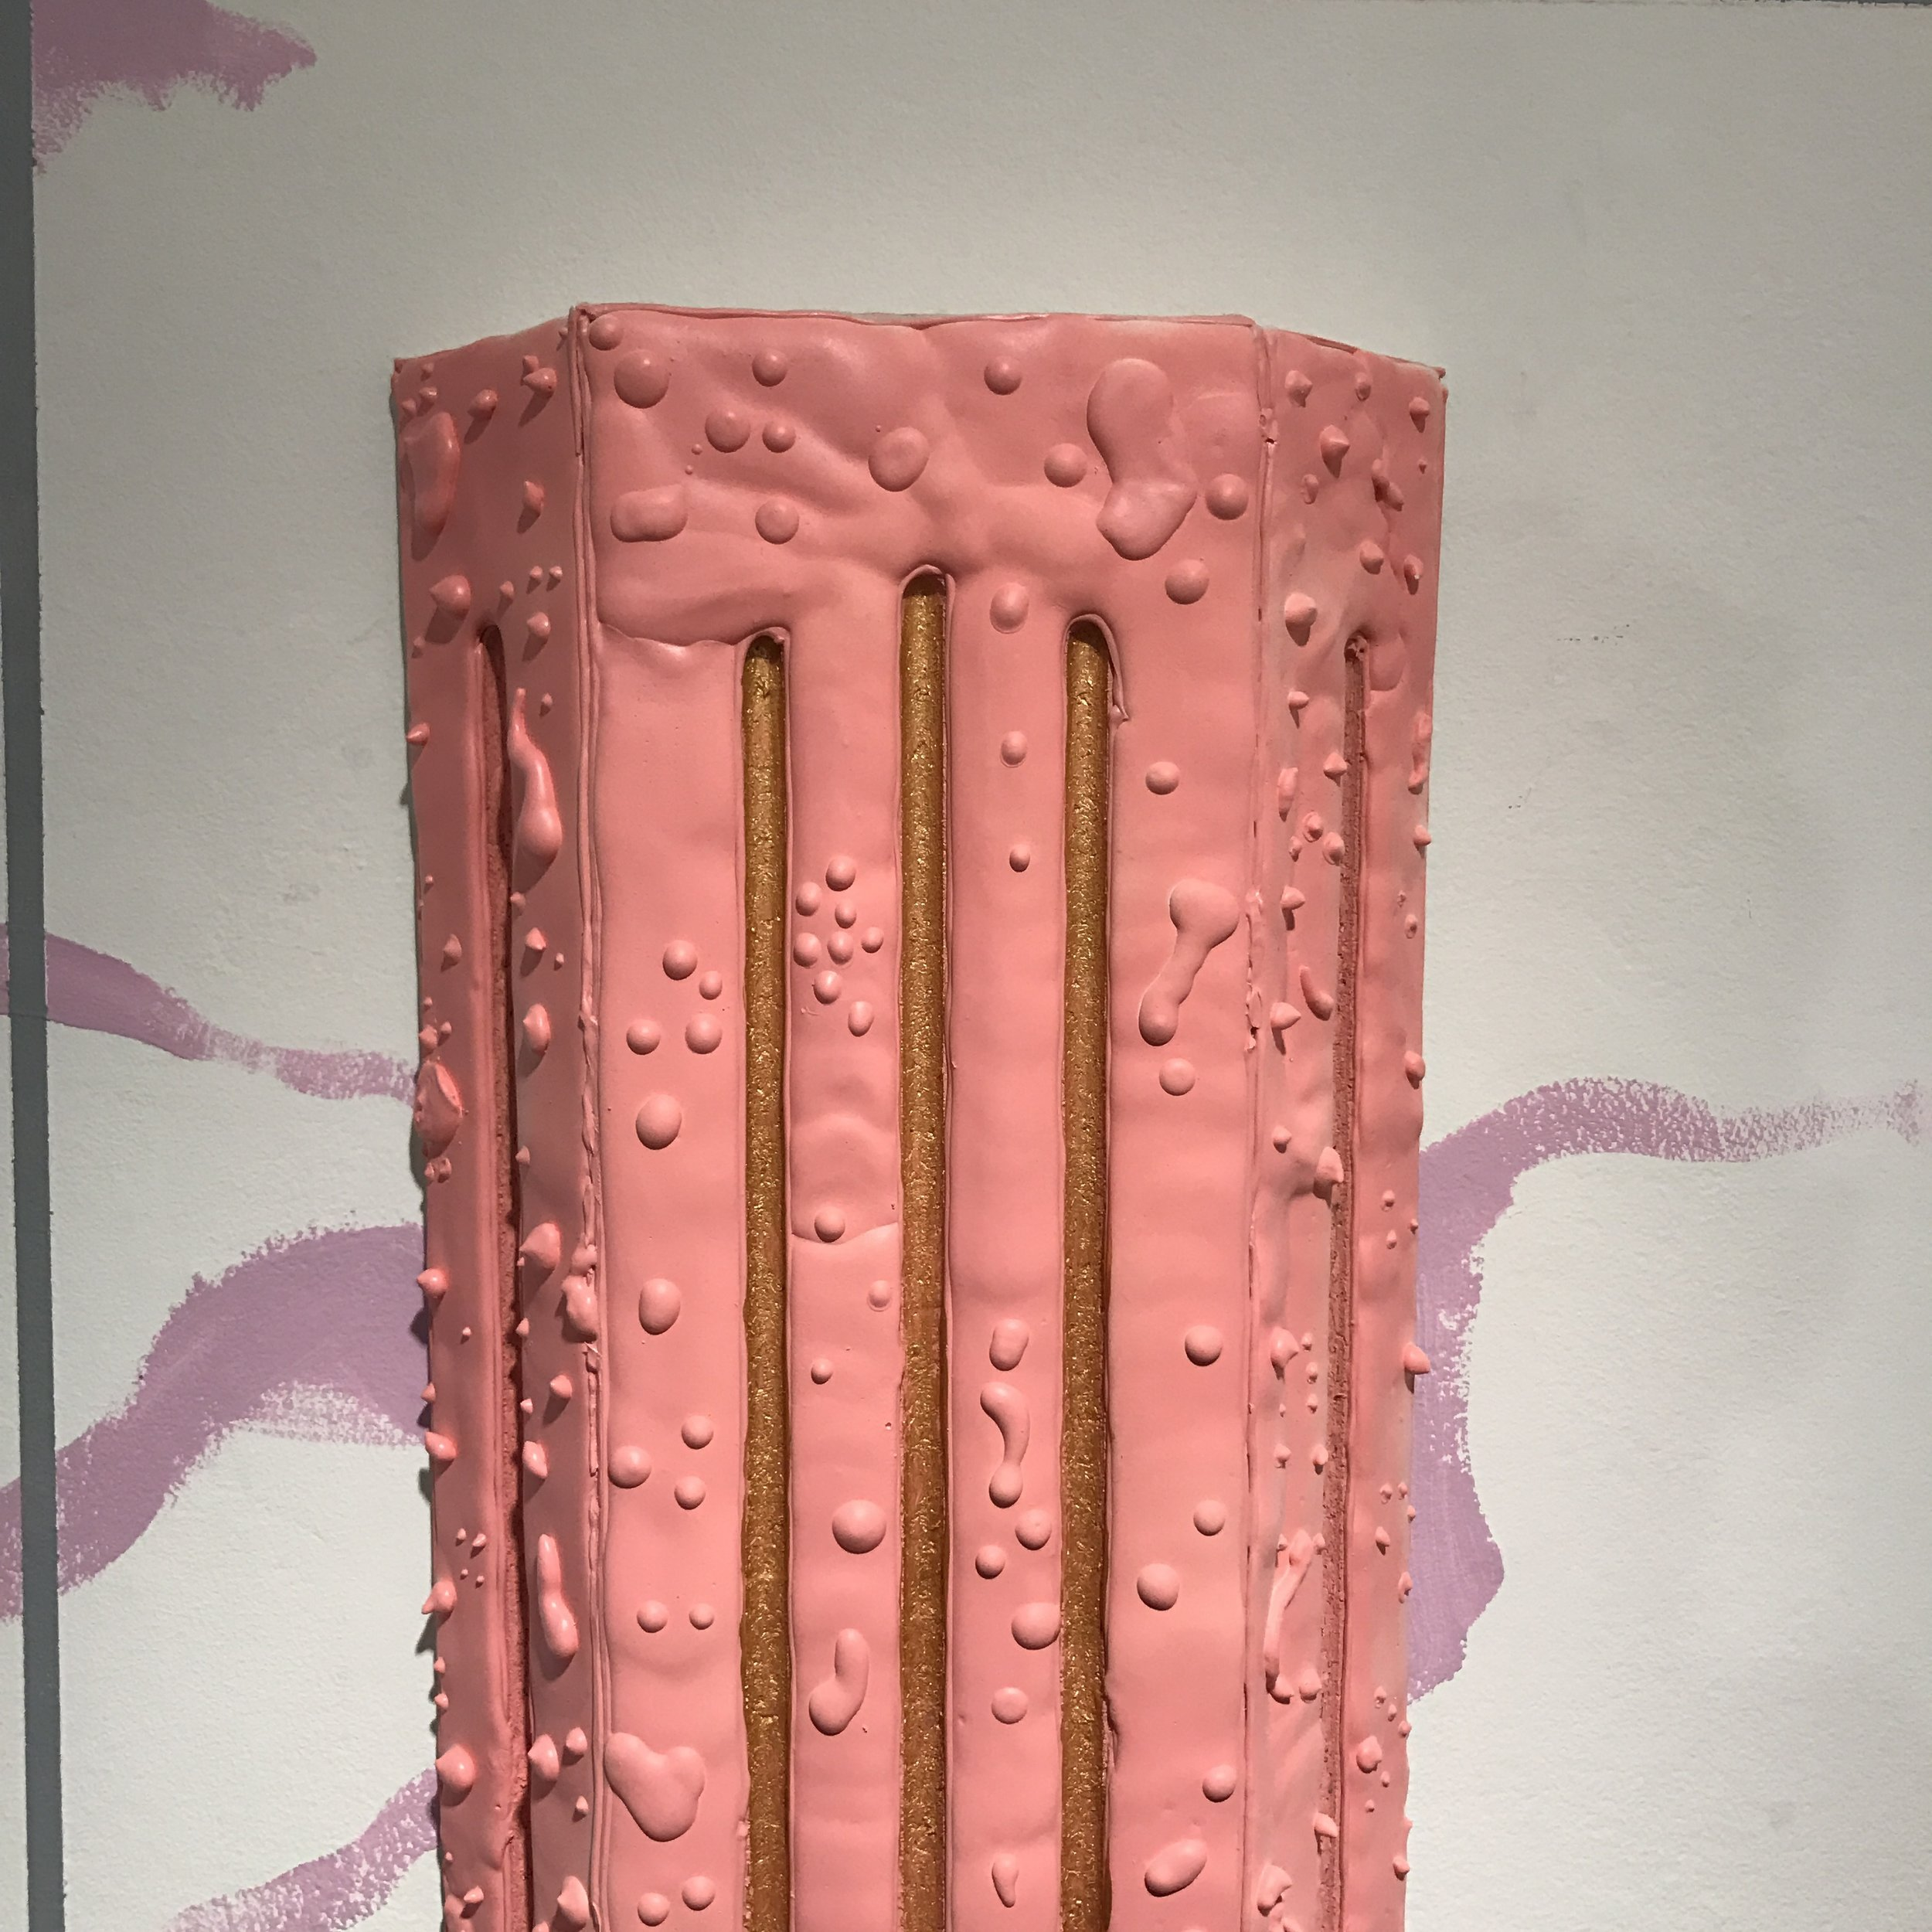 Blushing Column (detail)